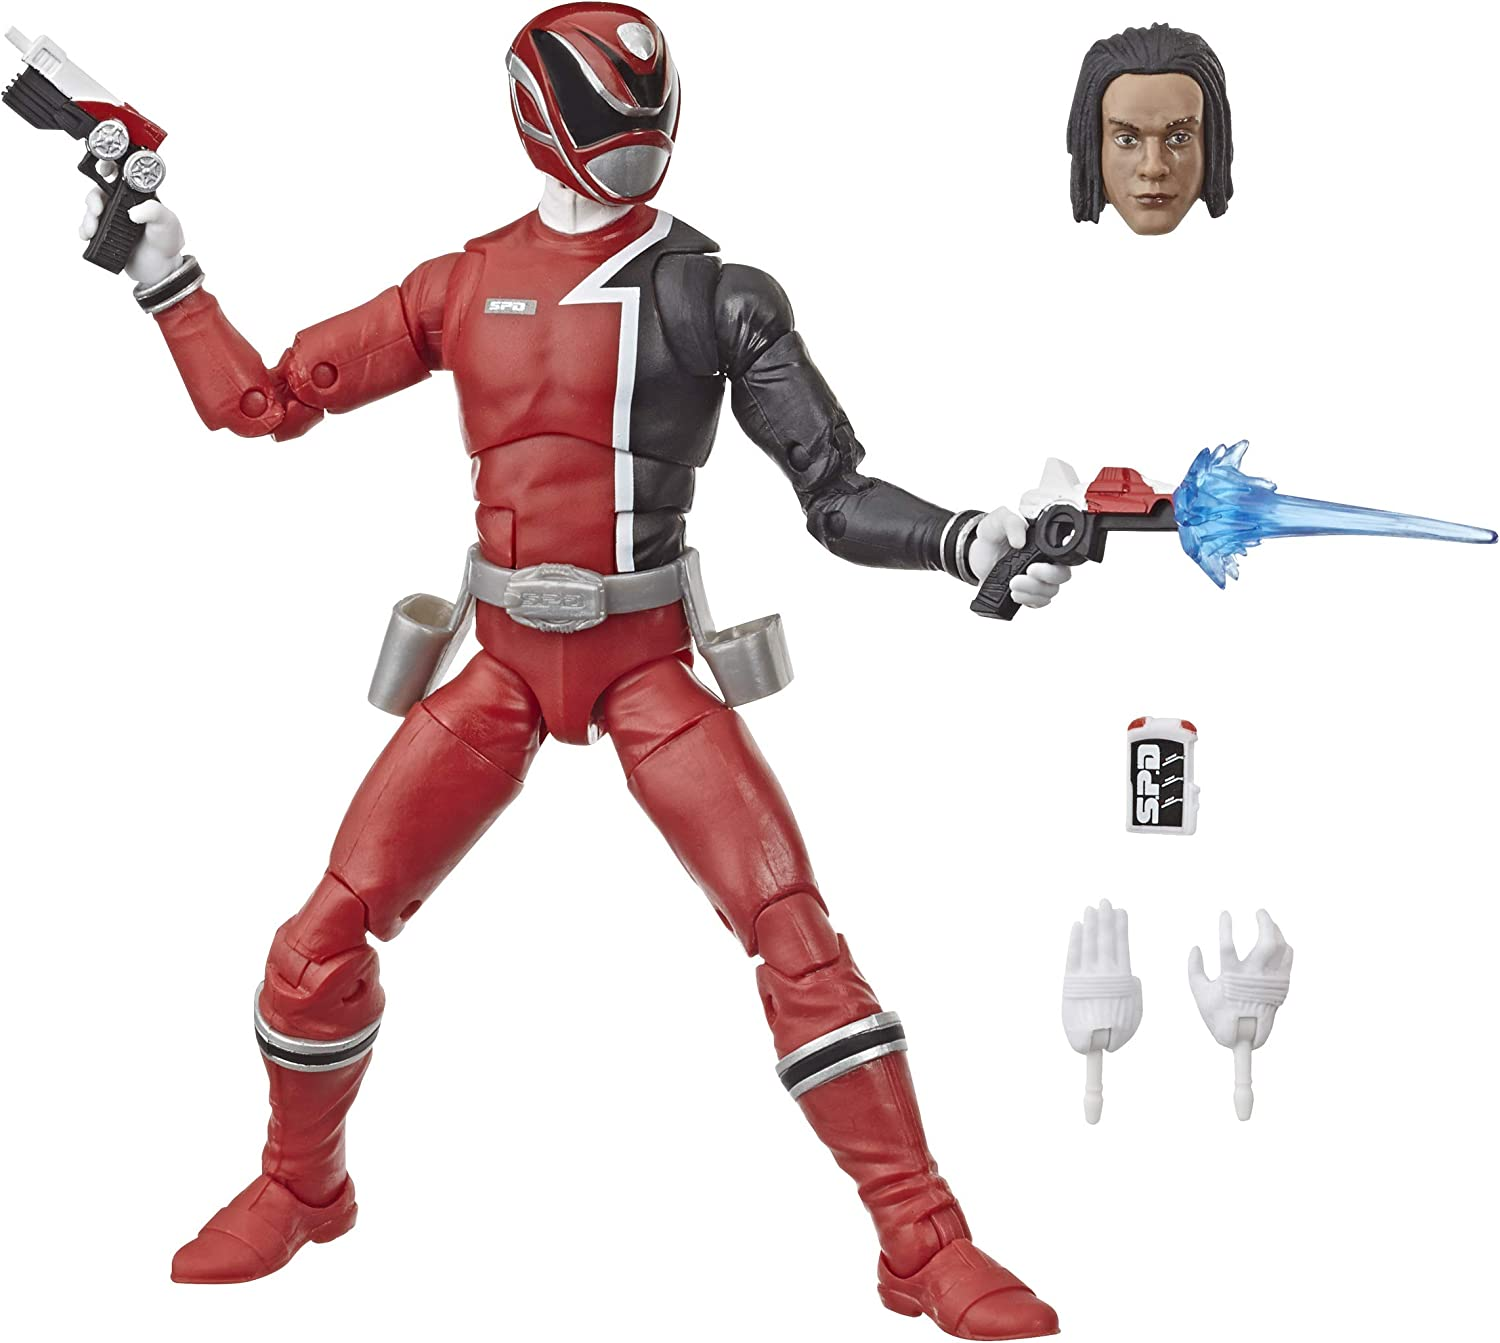 Power Rangers Lightning Collection 6-Inch S.P.D. Red Ranger Collectible Action Figure Toy with Accessories